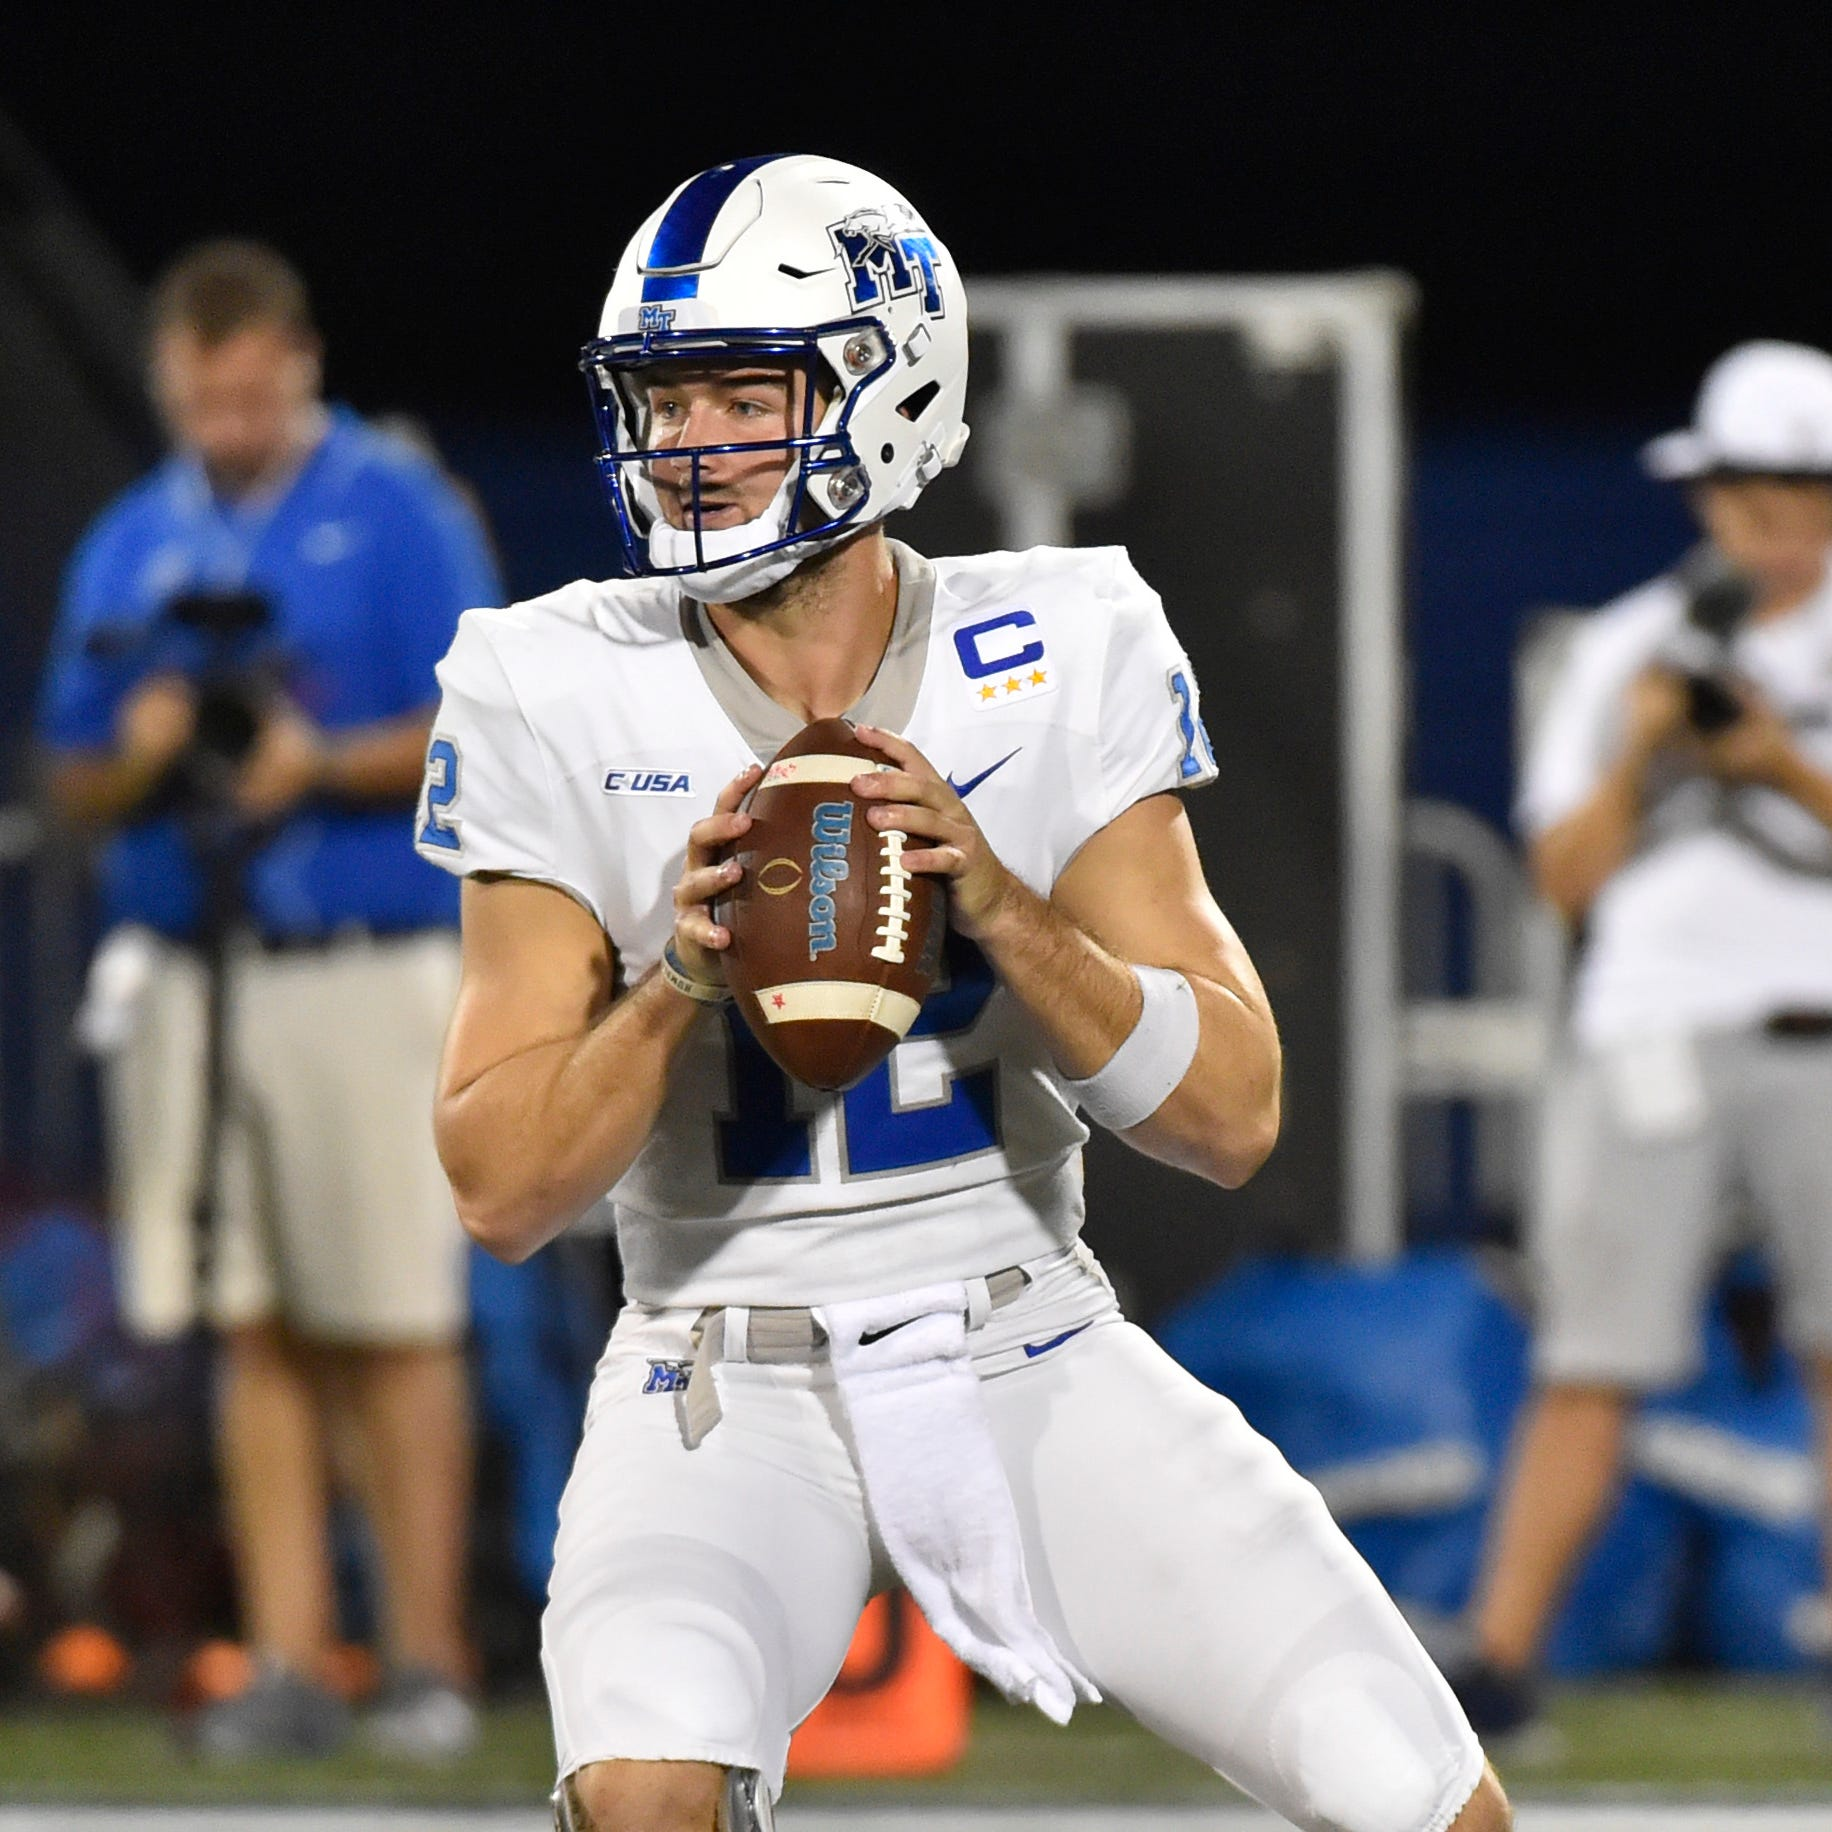 FIU 24, MTSU football 21: Five things we learned as Brent Stockstill gets hurt